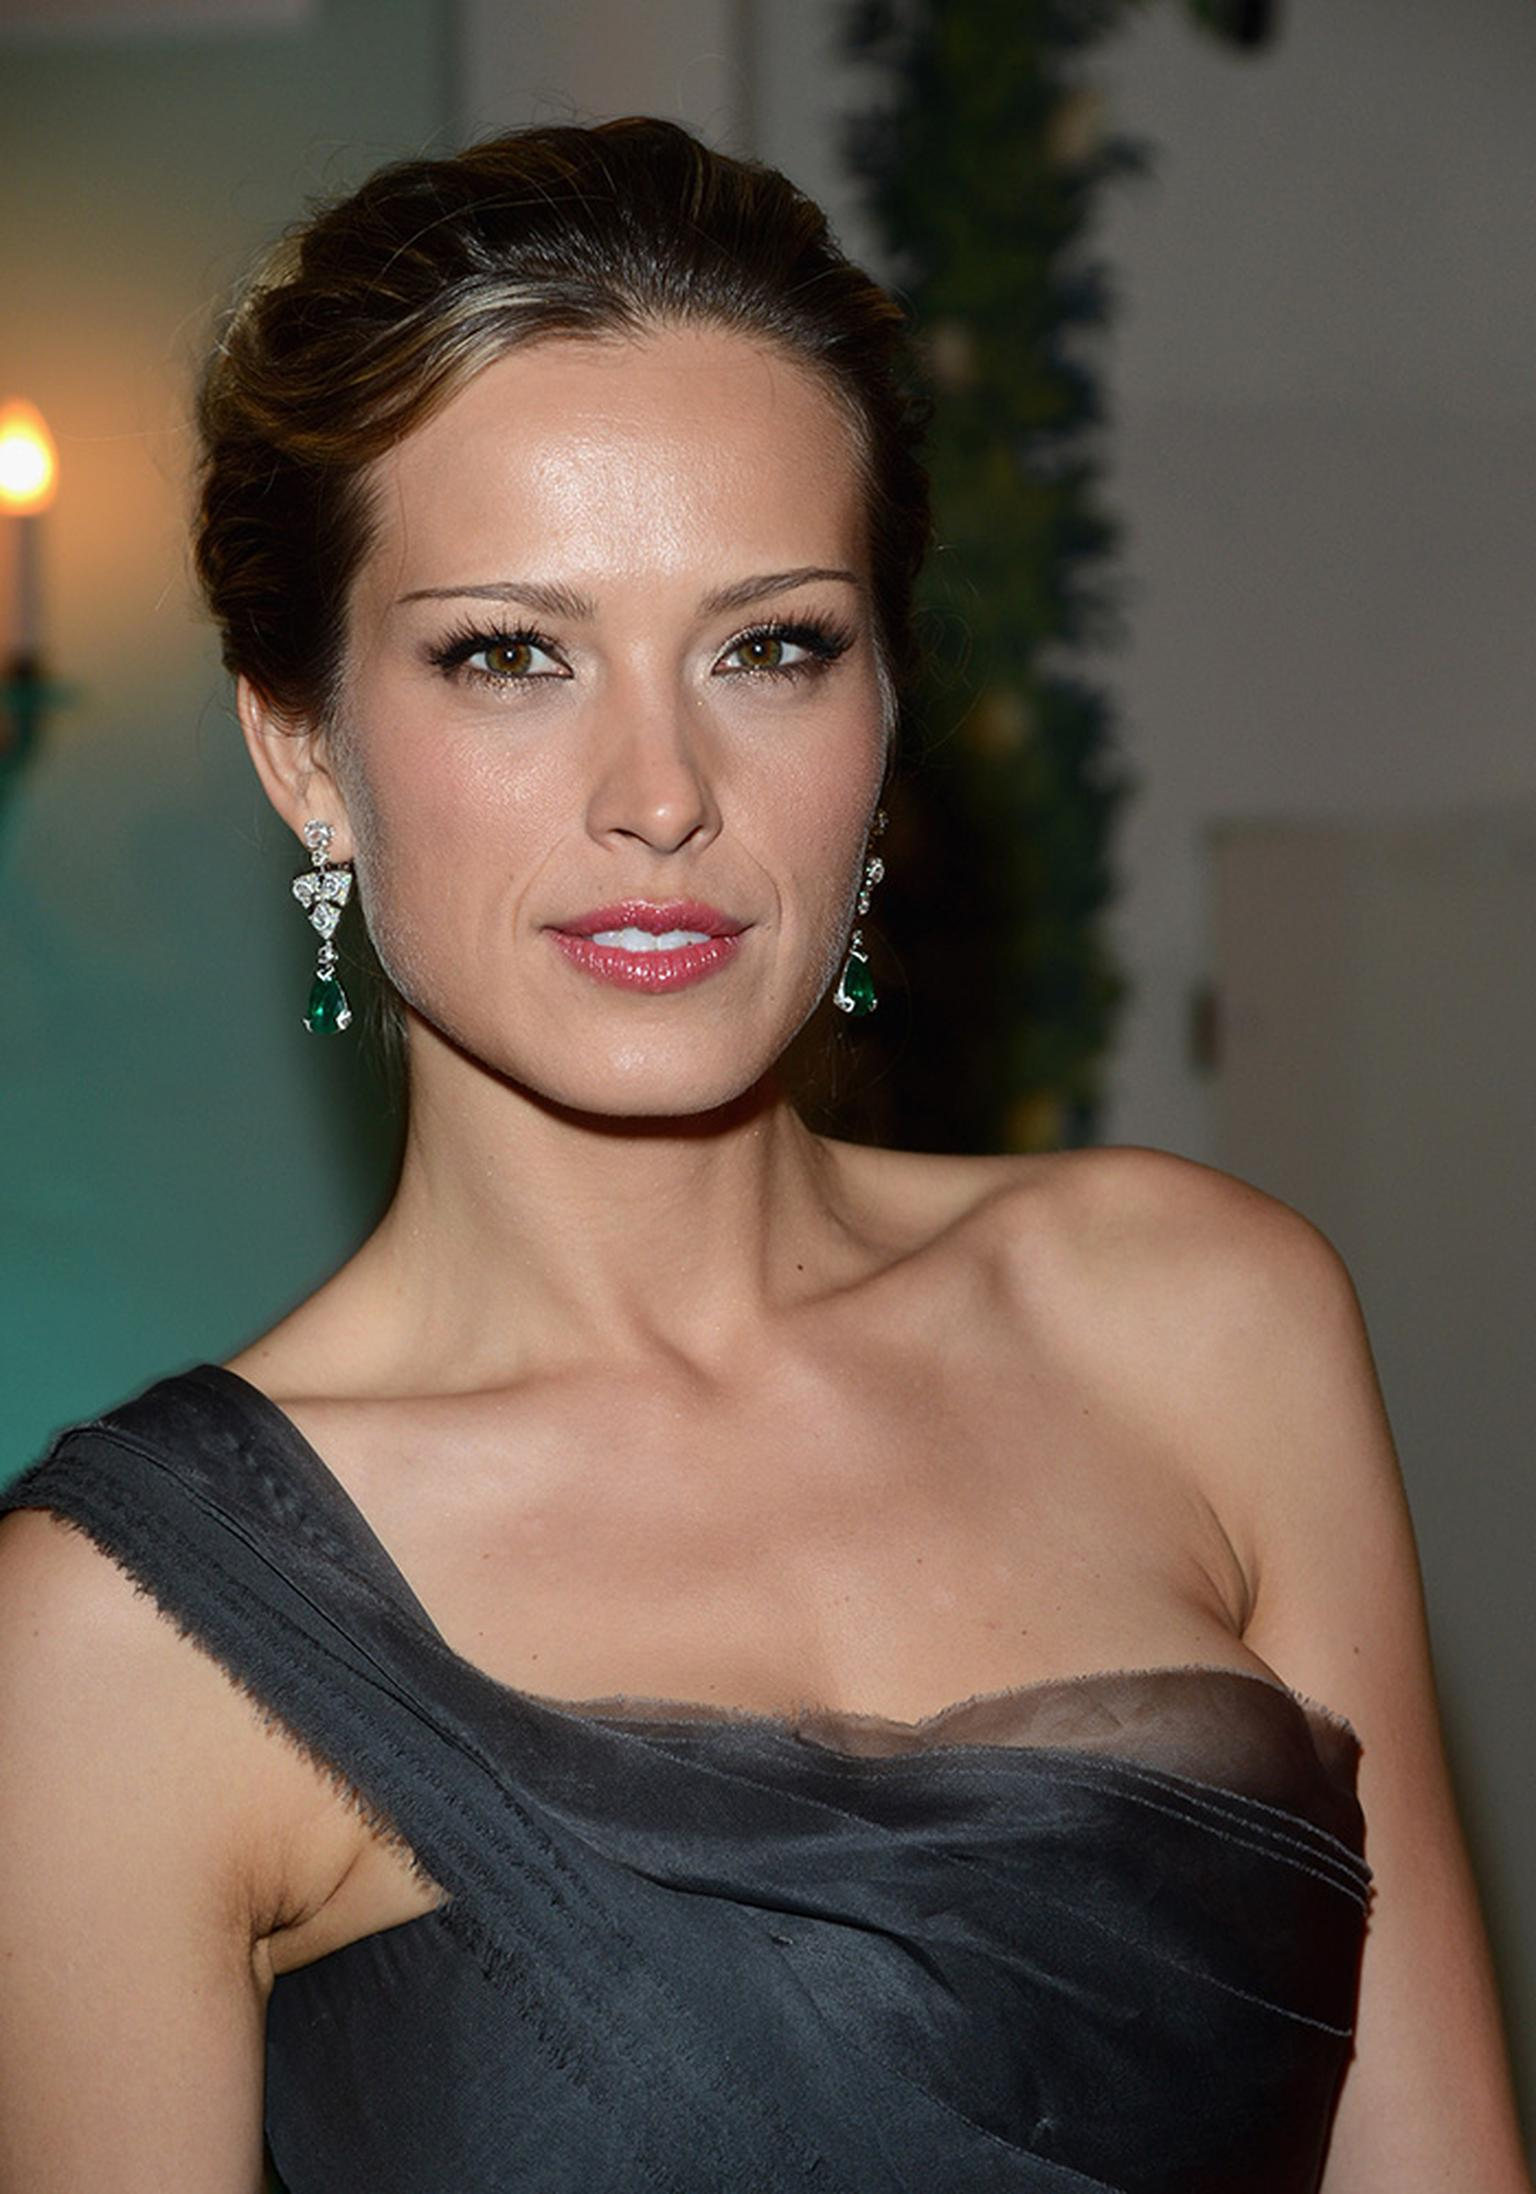 Petra-Nemcova-wearing-Avakian-diamond-and-emerald-earrings